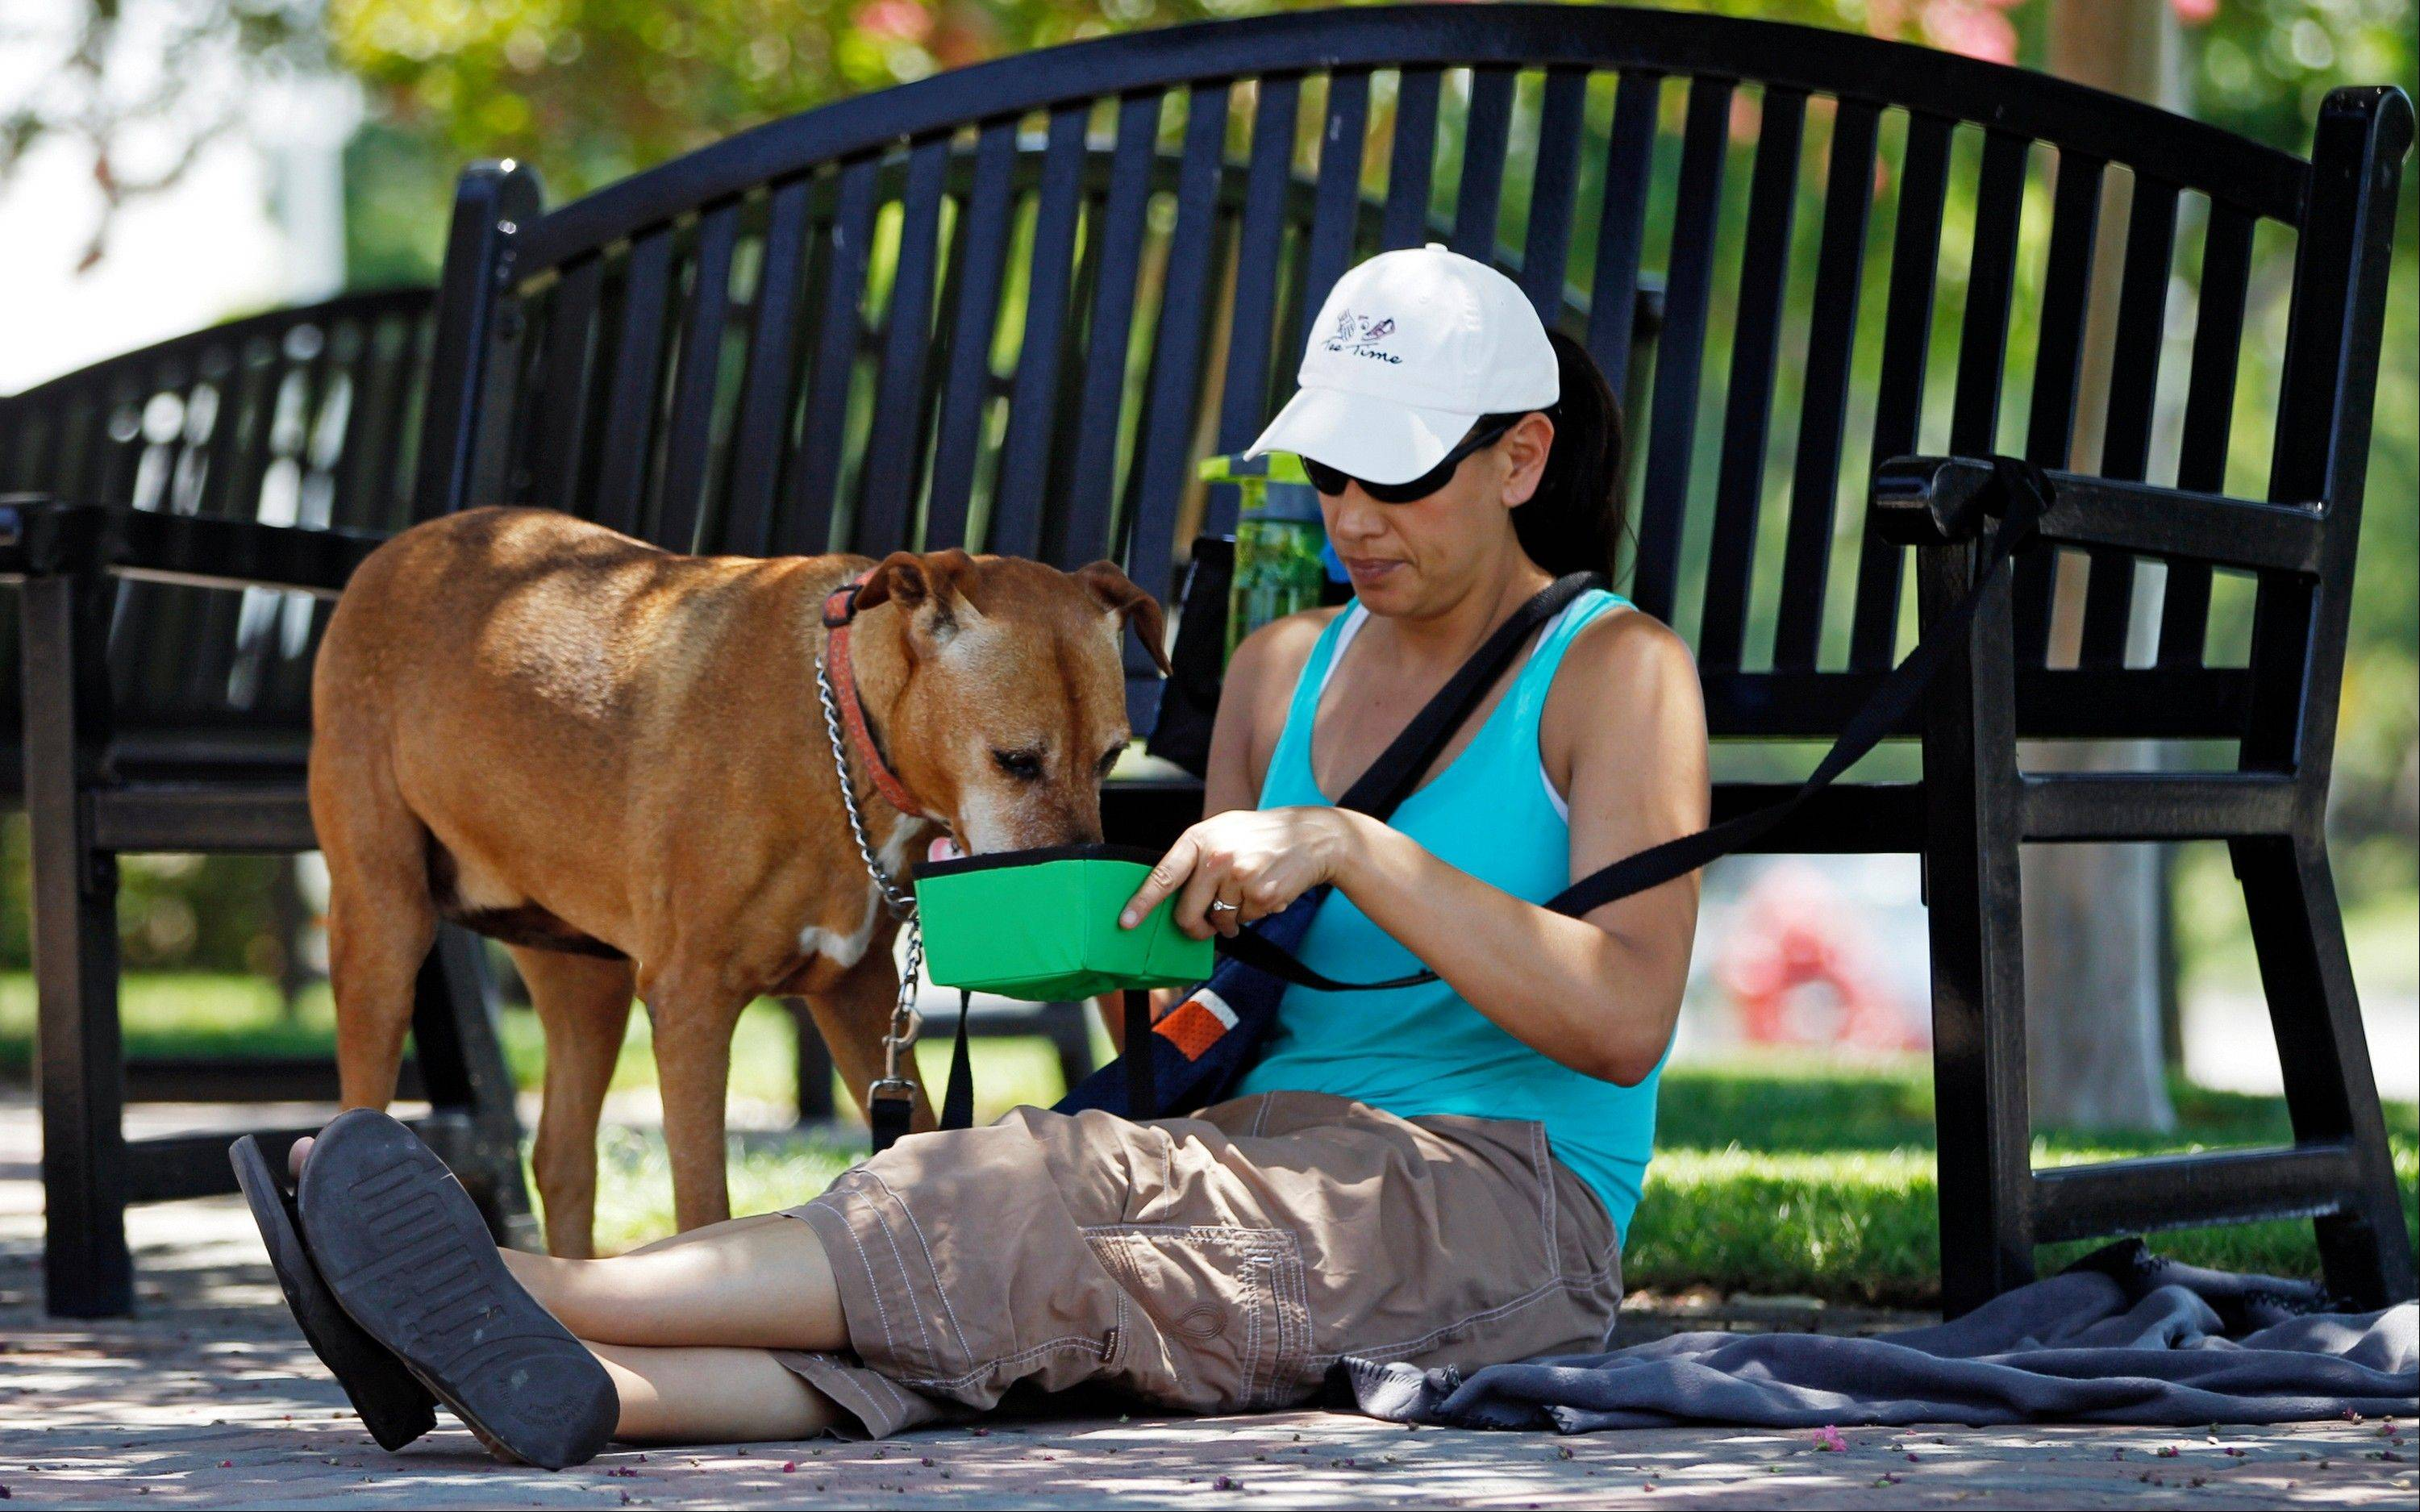 Monee Hauducoeur, from Upland, Calif., keeps a bowl of fresh water for her dog, Summer, as she awaits in the shade to adopt another dog outside the City of Rancho Cucamonga Animal Care & Adoption Center in Rancho Cucamonga, Calif.